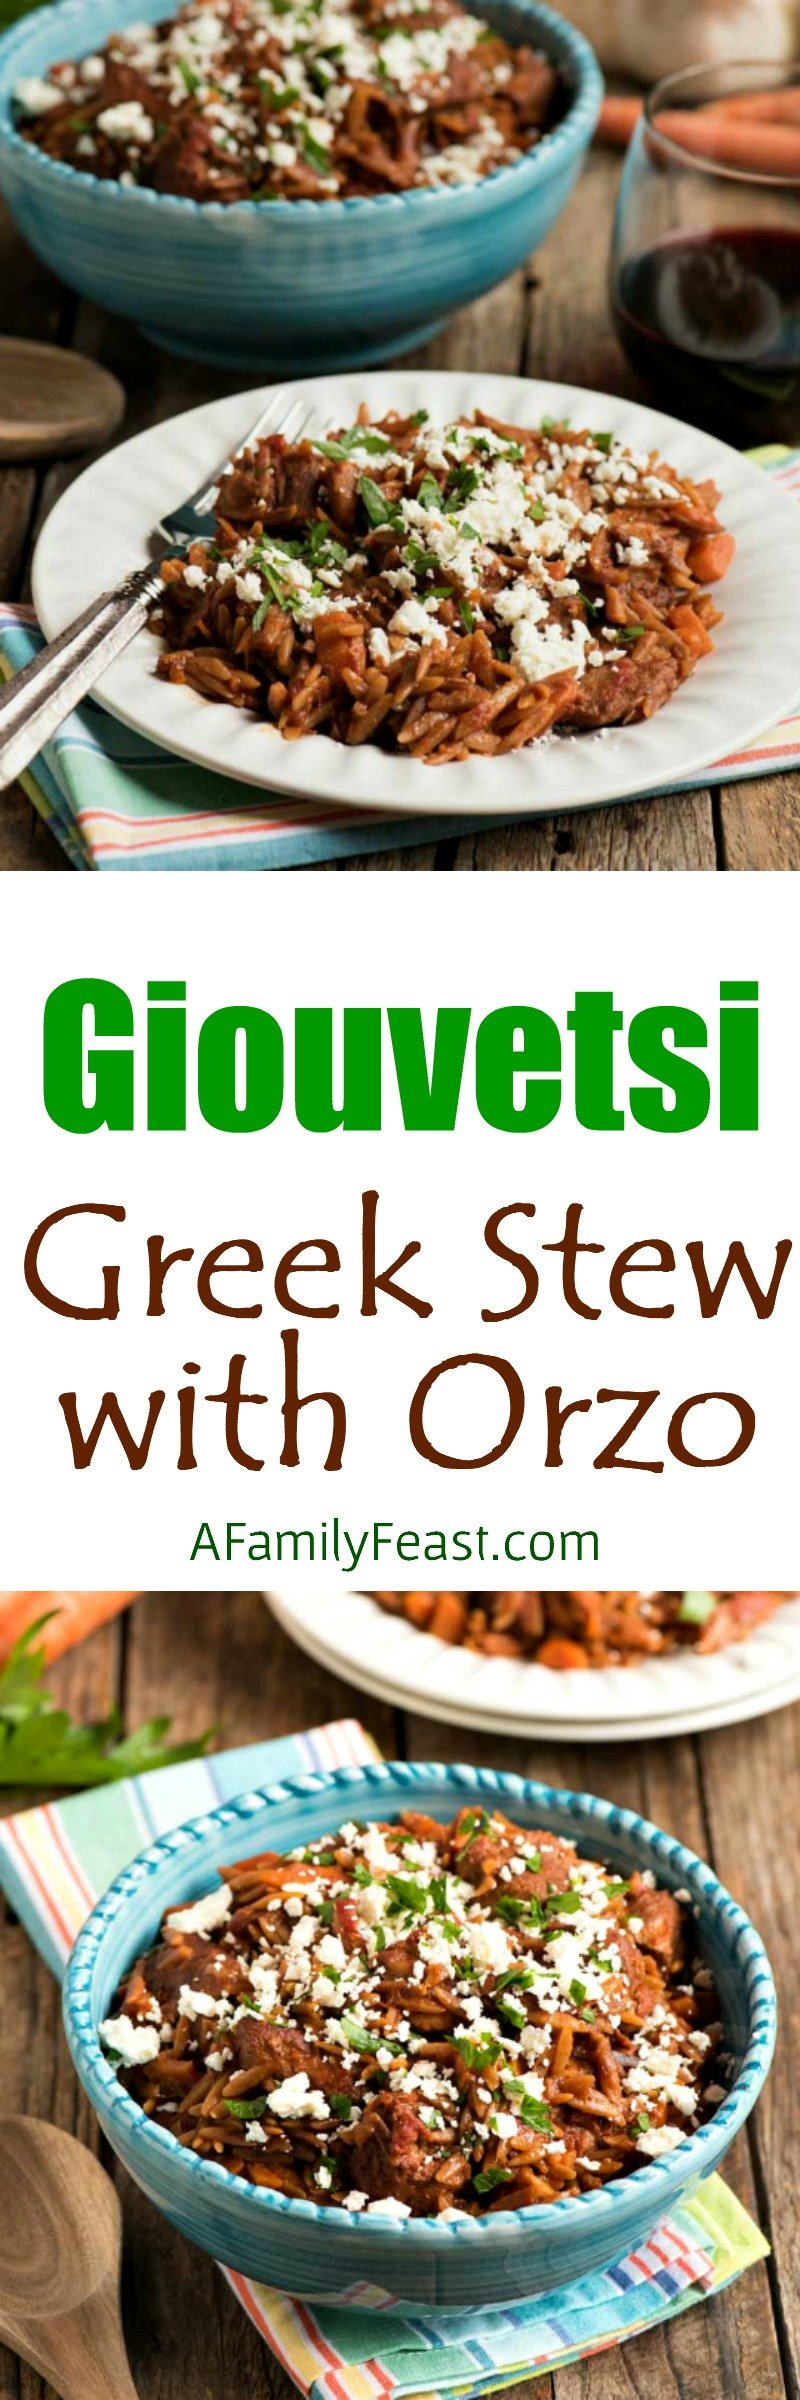 Giouvetsi (or Youvetsi) is a delicious and easy baked Greek pasta dish made with chicken, lamb or beef, orzo and tomato sauce.